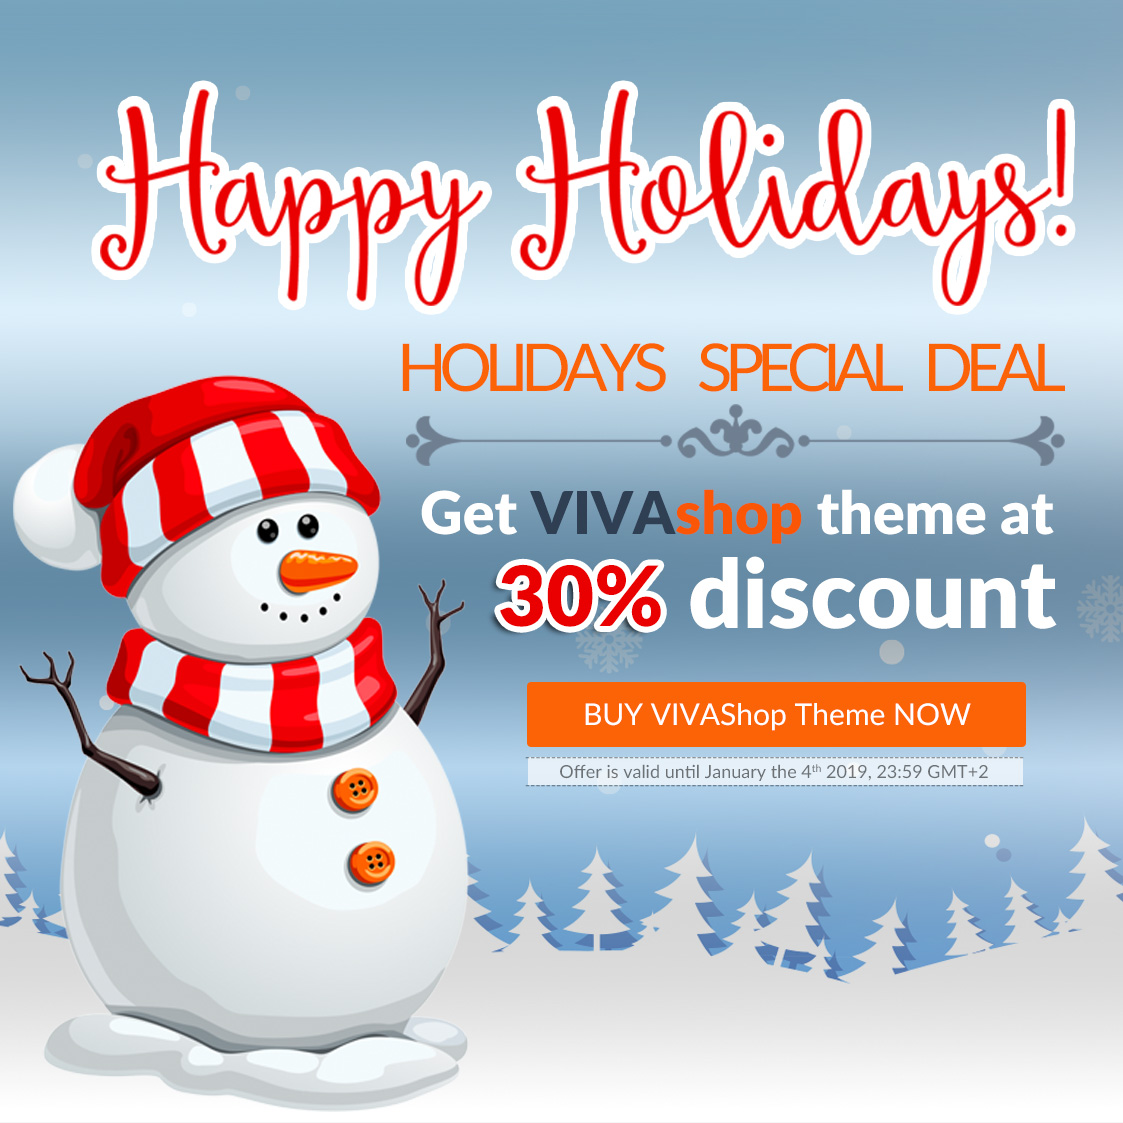 VIVAshop-Christmas-discount-2018-MP.jpg